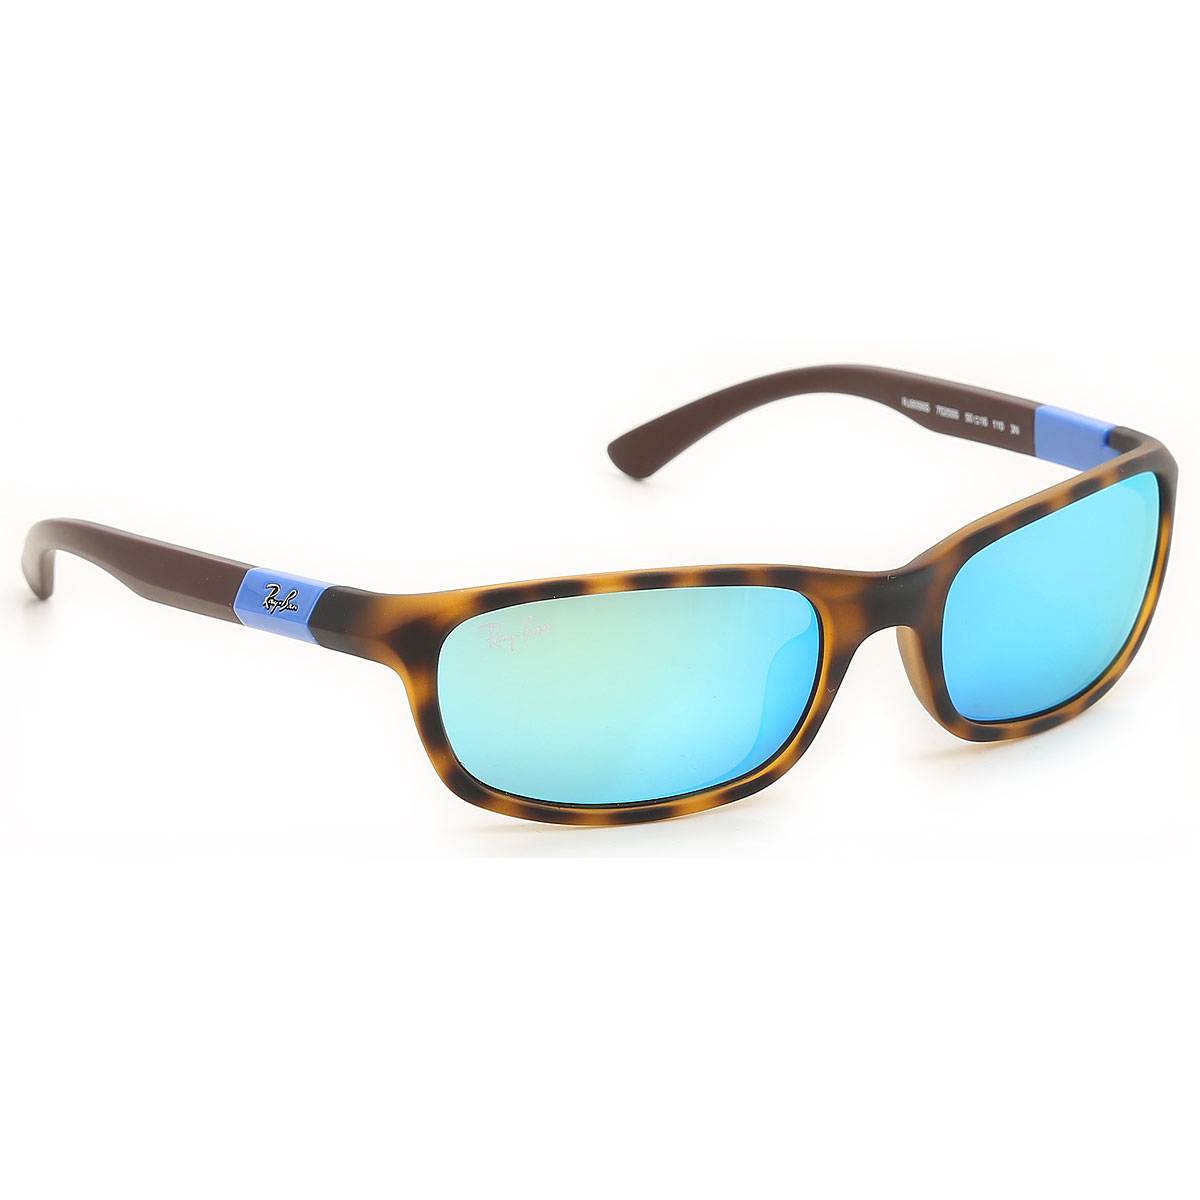 Ray Ban Junior Kids Sunglasses for Boys On Sale, Matt Havana, 2017 USA-407368